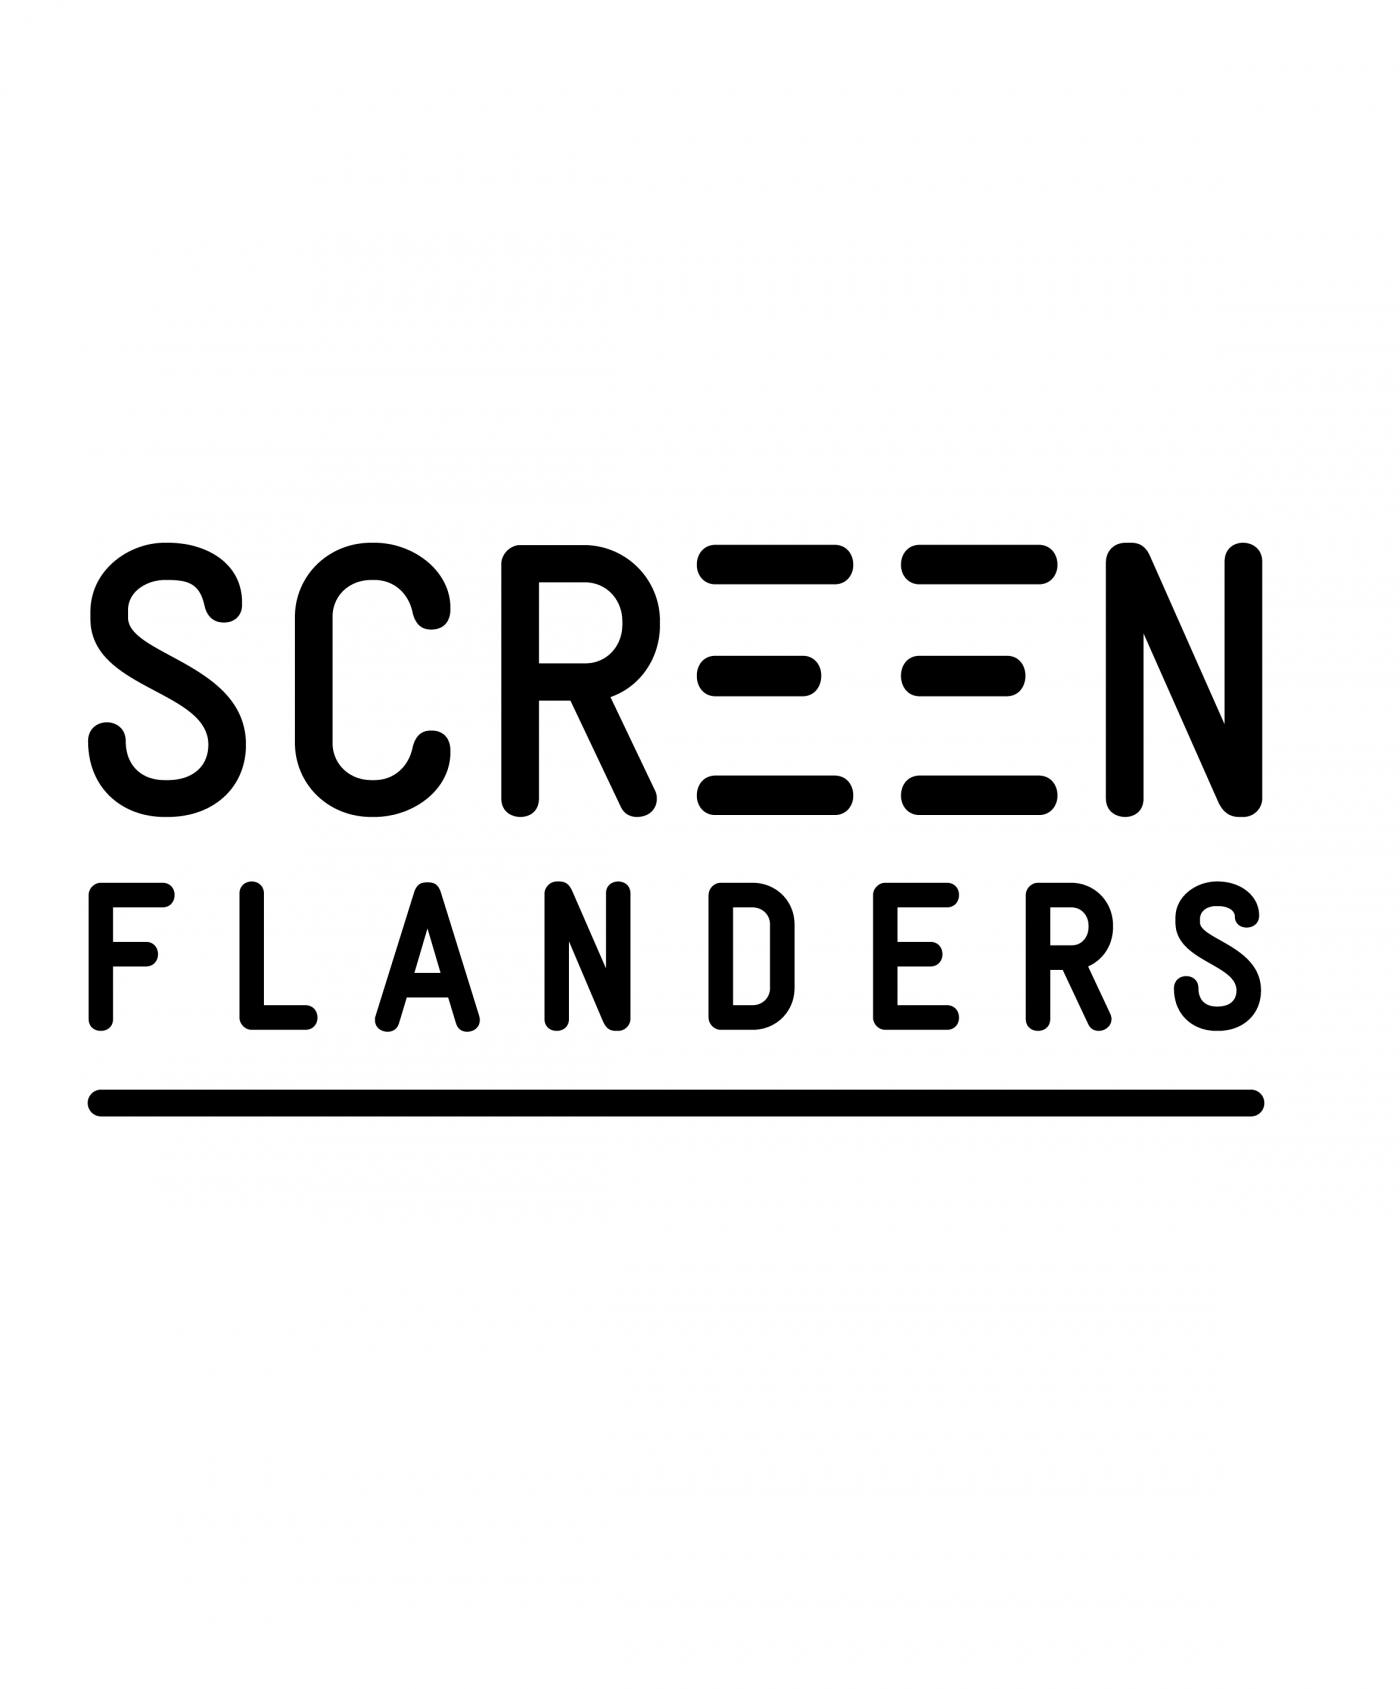 screen flanders